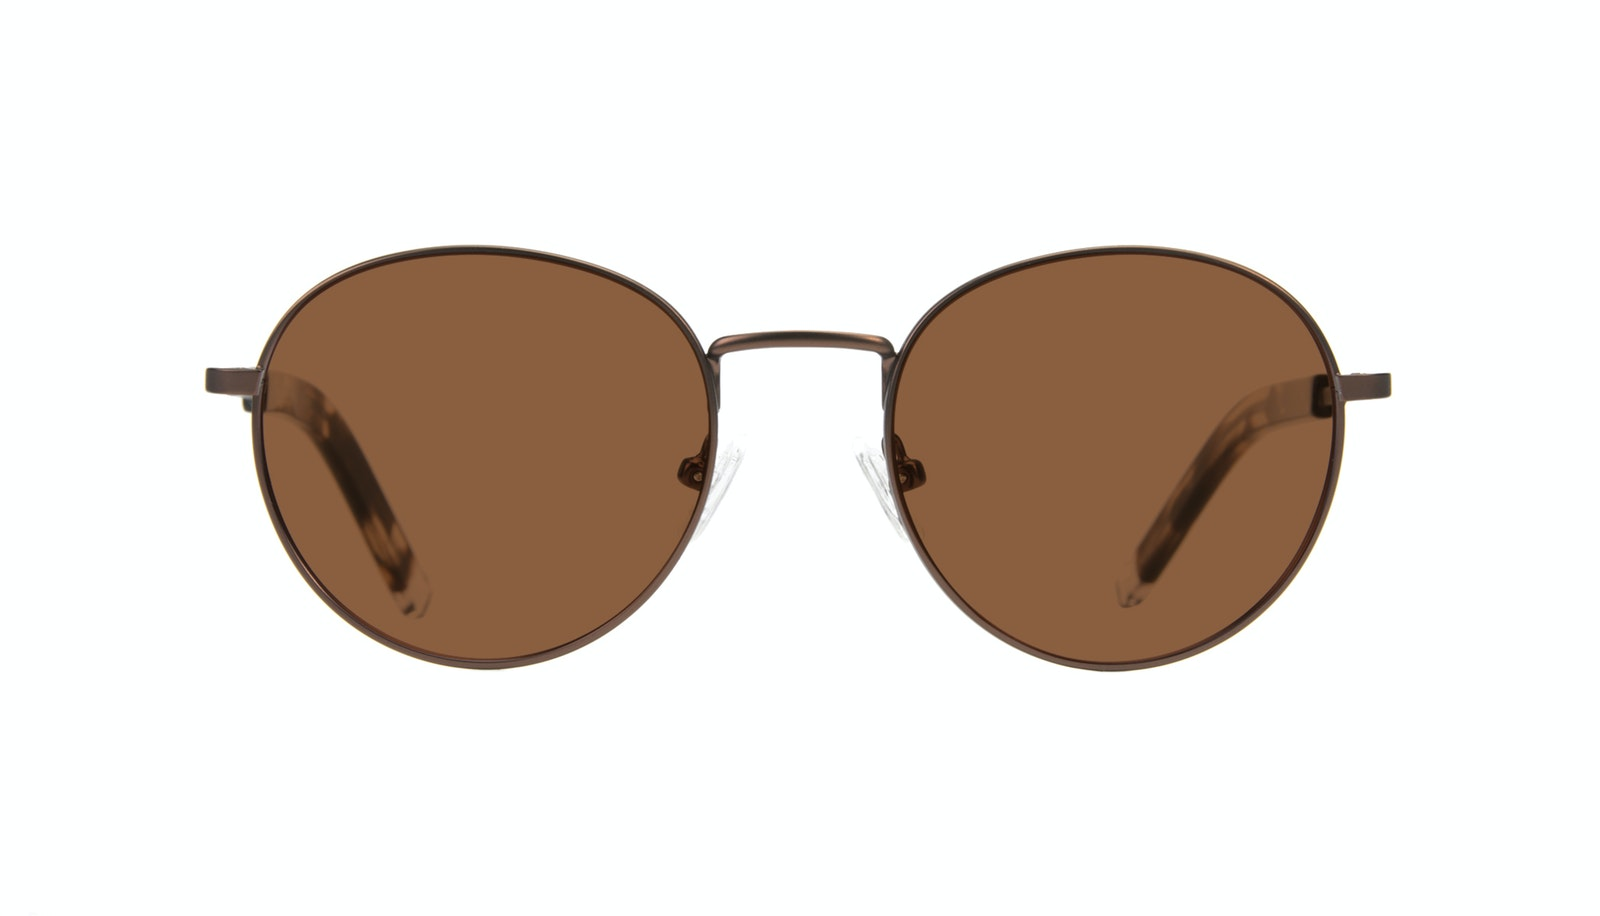 Affordable Fashion Glasses Round Sunglasses Men Lean Mud